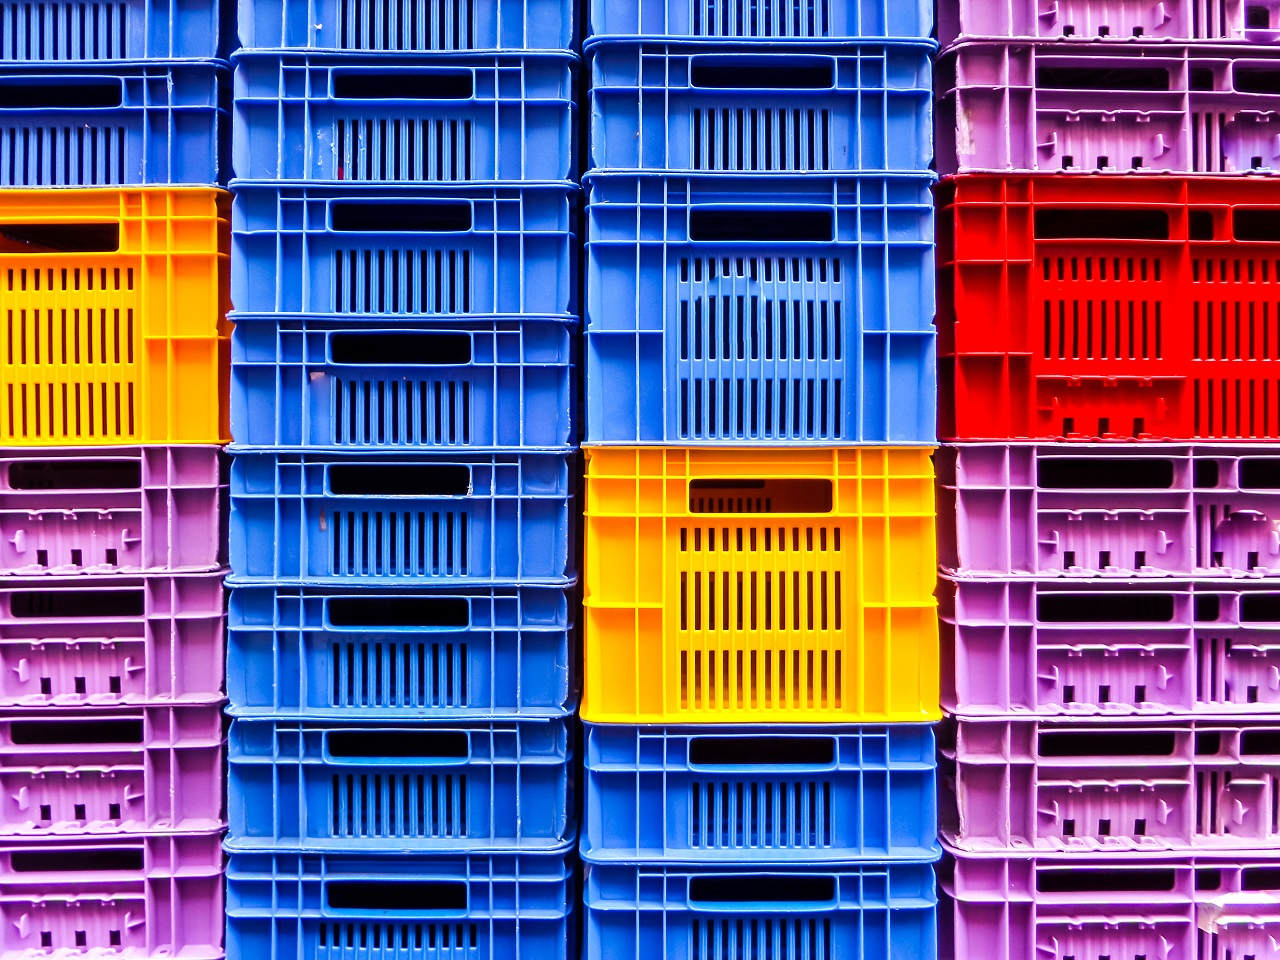 Empty plastic crates stacked up on each other